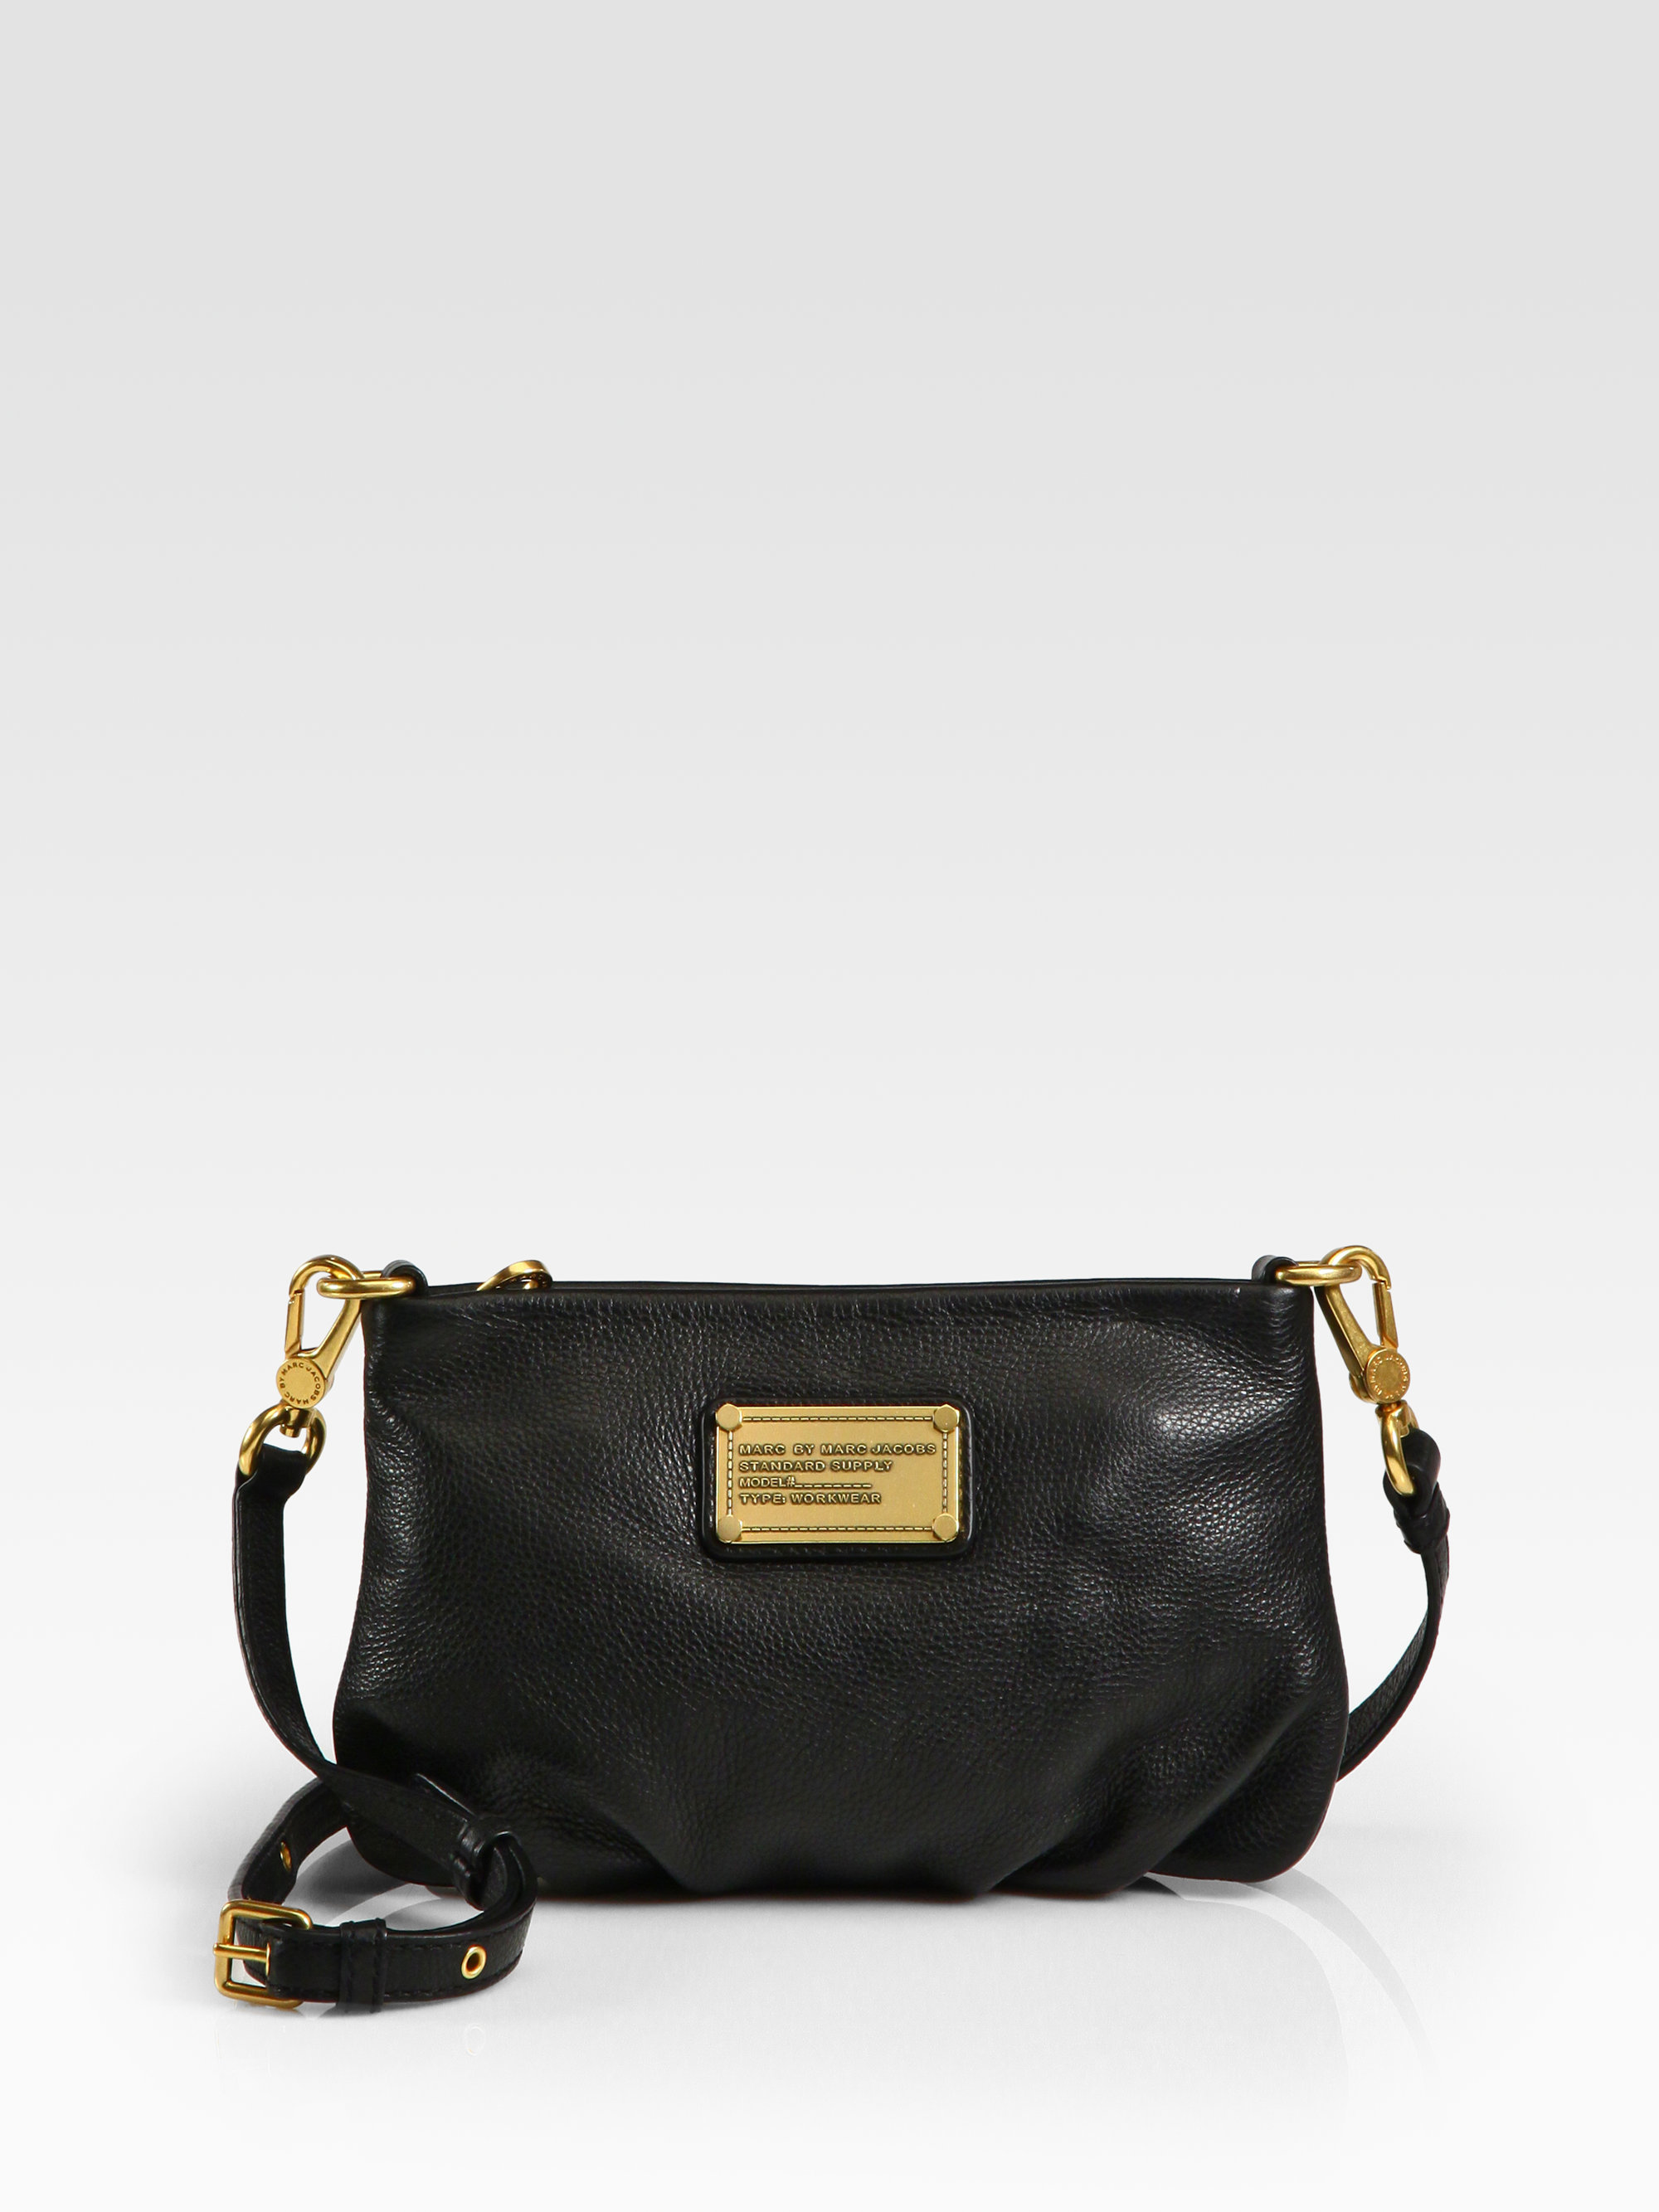 498731b8350e Lyst - Marc By Marc Jacobs Classic Q Percy Leather Cross-Body Bag in ...